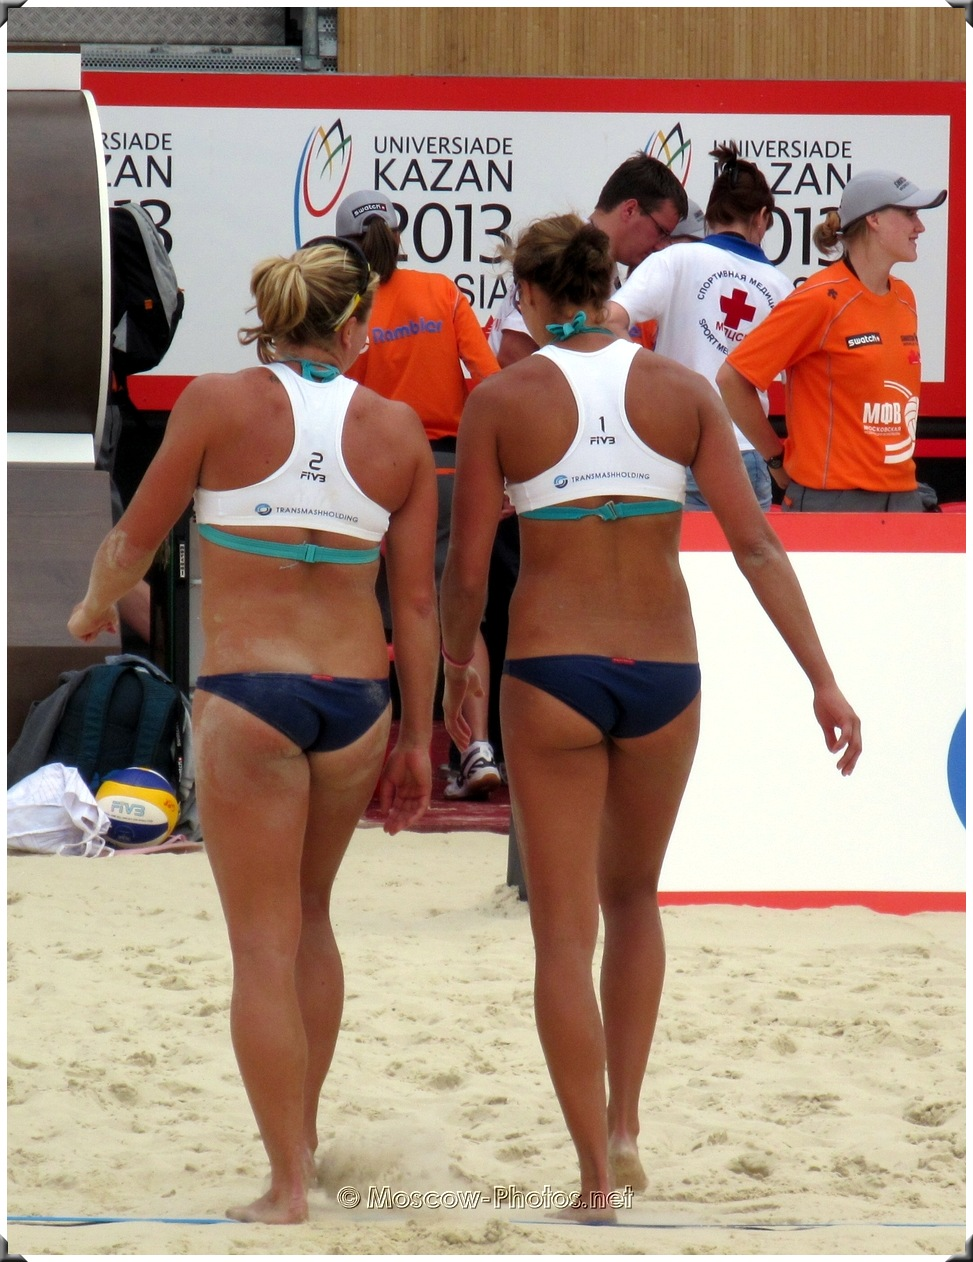 BEACH VOLLEYBALL GAME INTERRUPTION